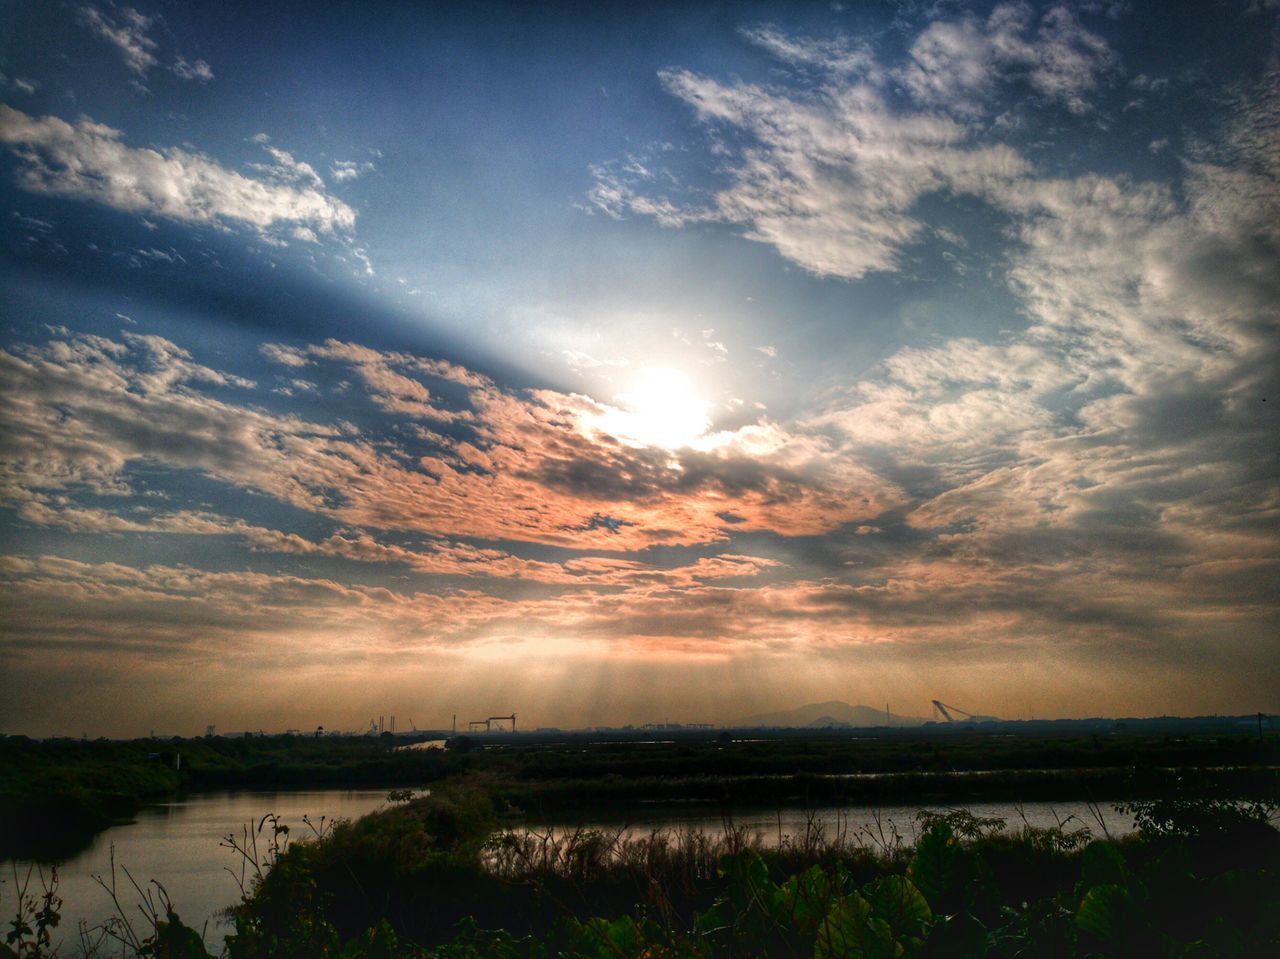 scenics, tranquil scene, sky, sunset, nature, tranquility, beauty in nature, water, cloud - sky, reflection, lake, no people, outdoors, landscape, day